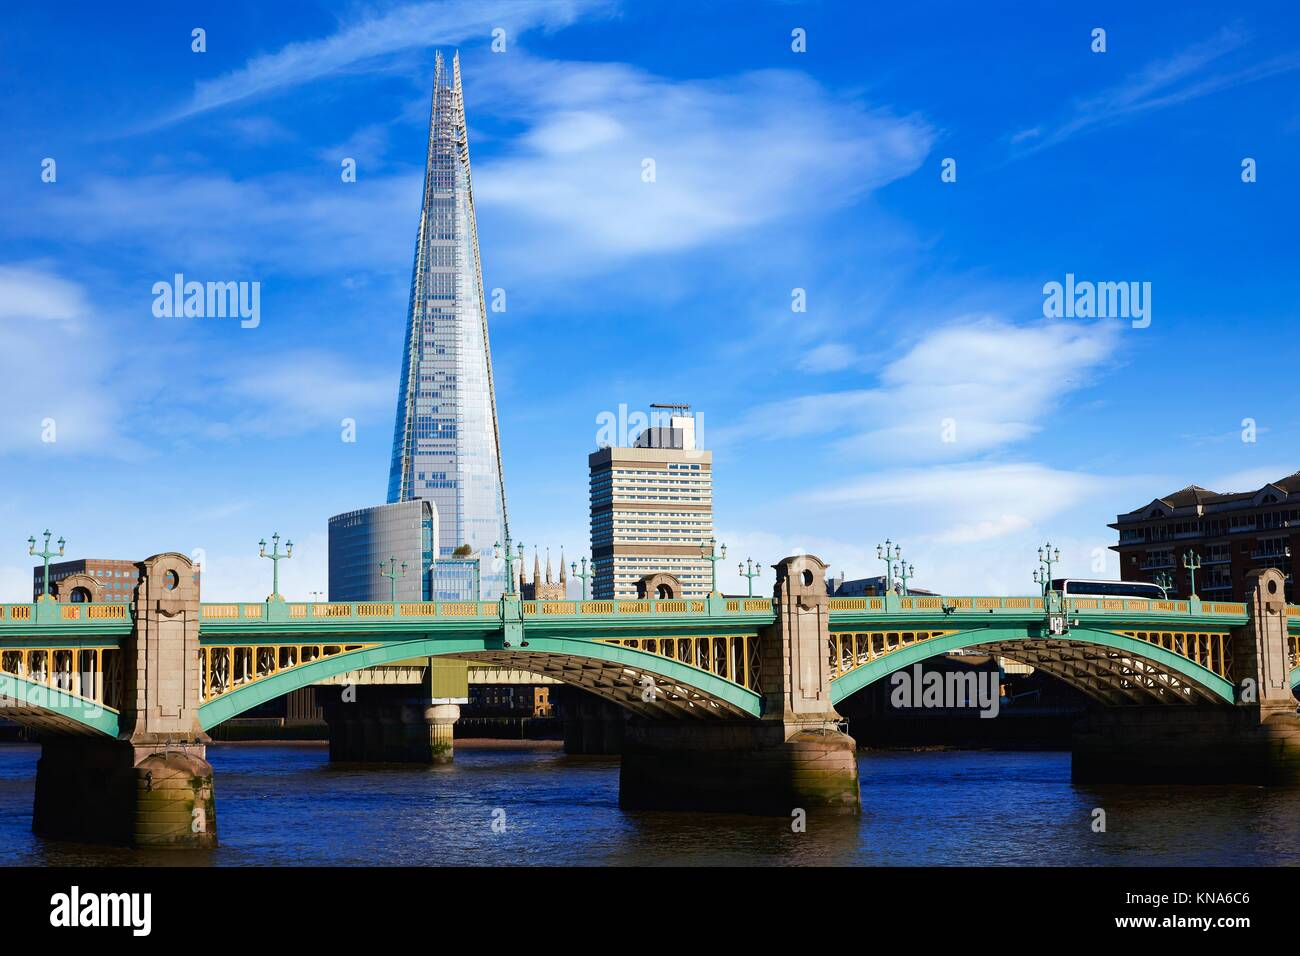 London Southwark bridge and the Shard on Thames river in UK. - Stock Image